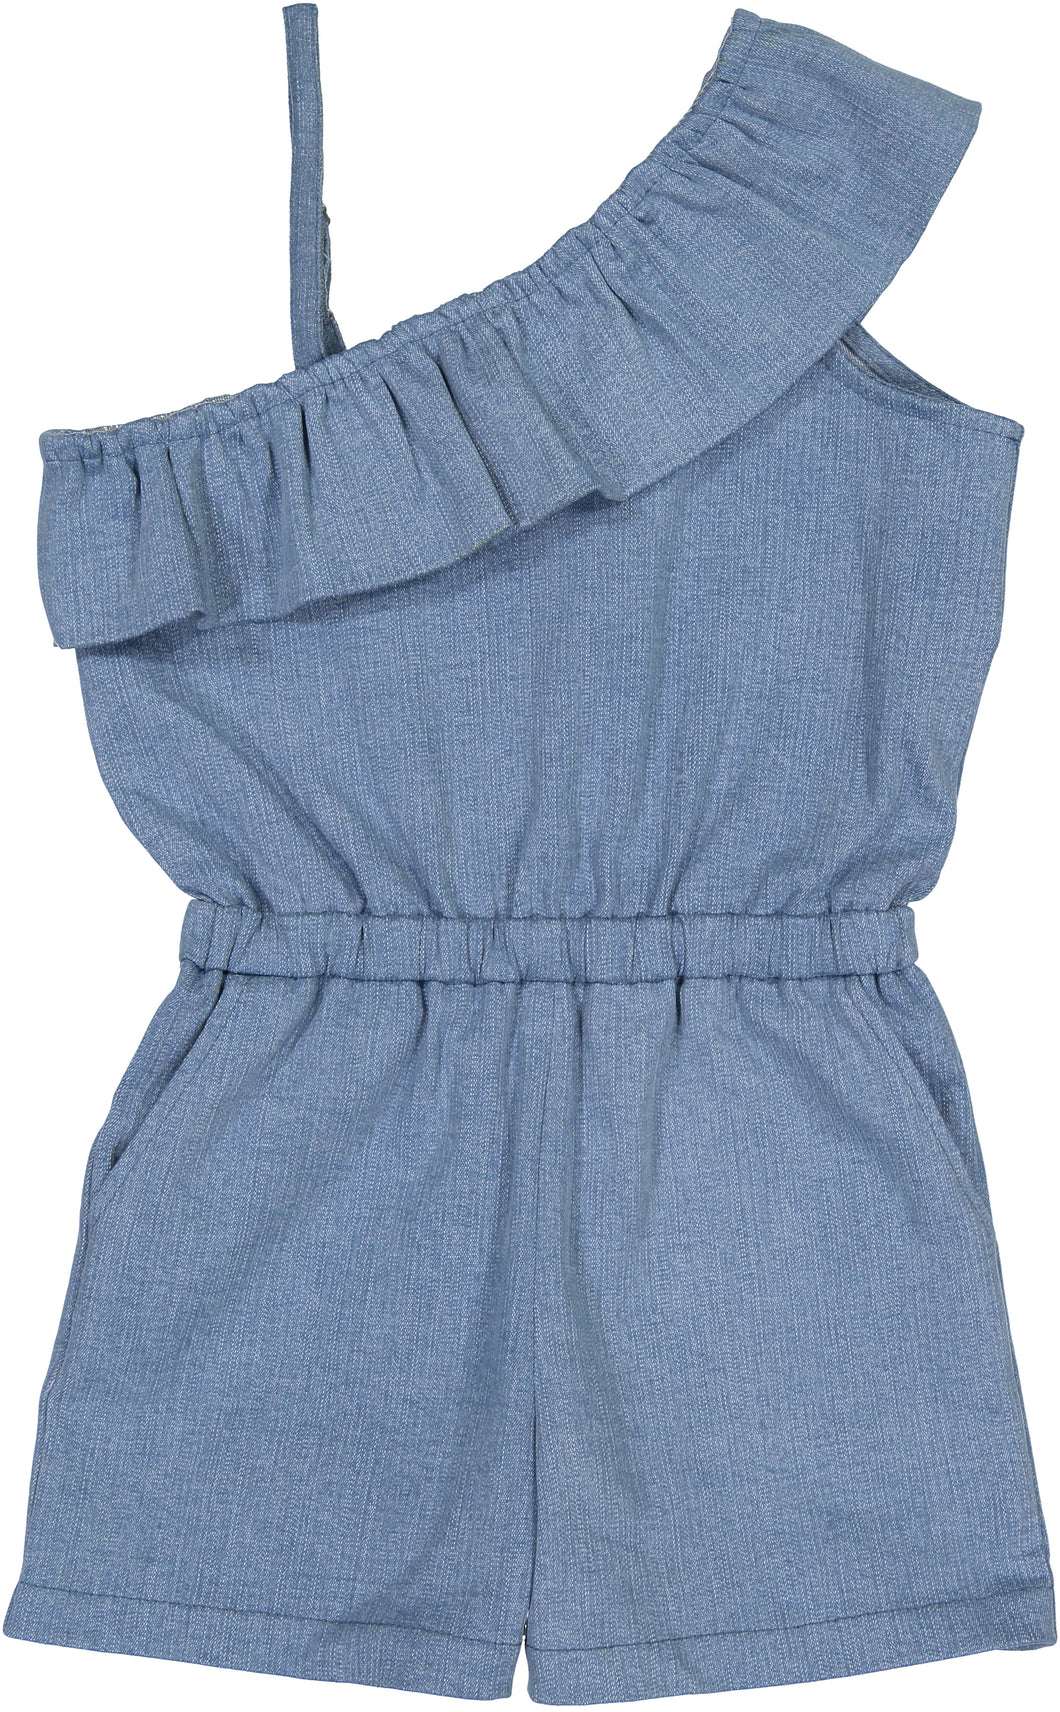 Denim Romper - Andy & Evan